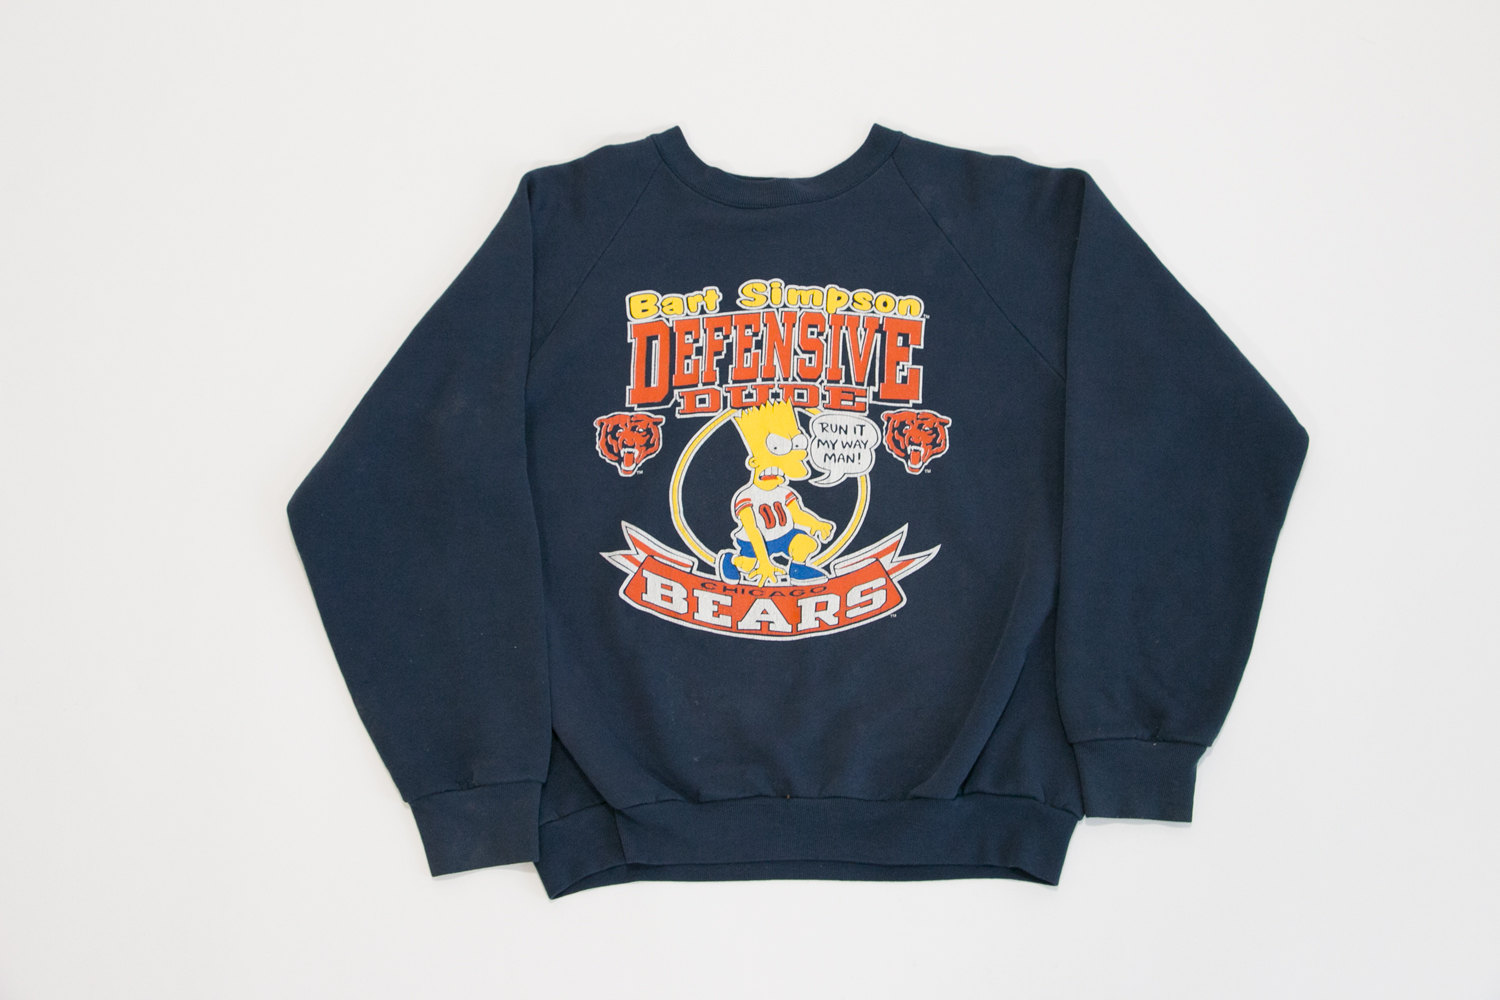 Vintage Bart Simpson Chicago Bears Sweatshirt // Large // Defensive Dude // Navy Blue w Screen Printed Ink //  Rare Sports Apparel, Hipster